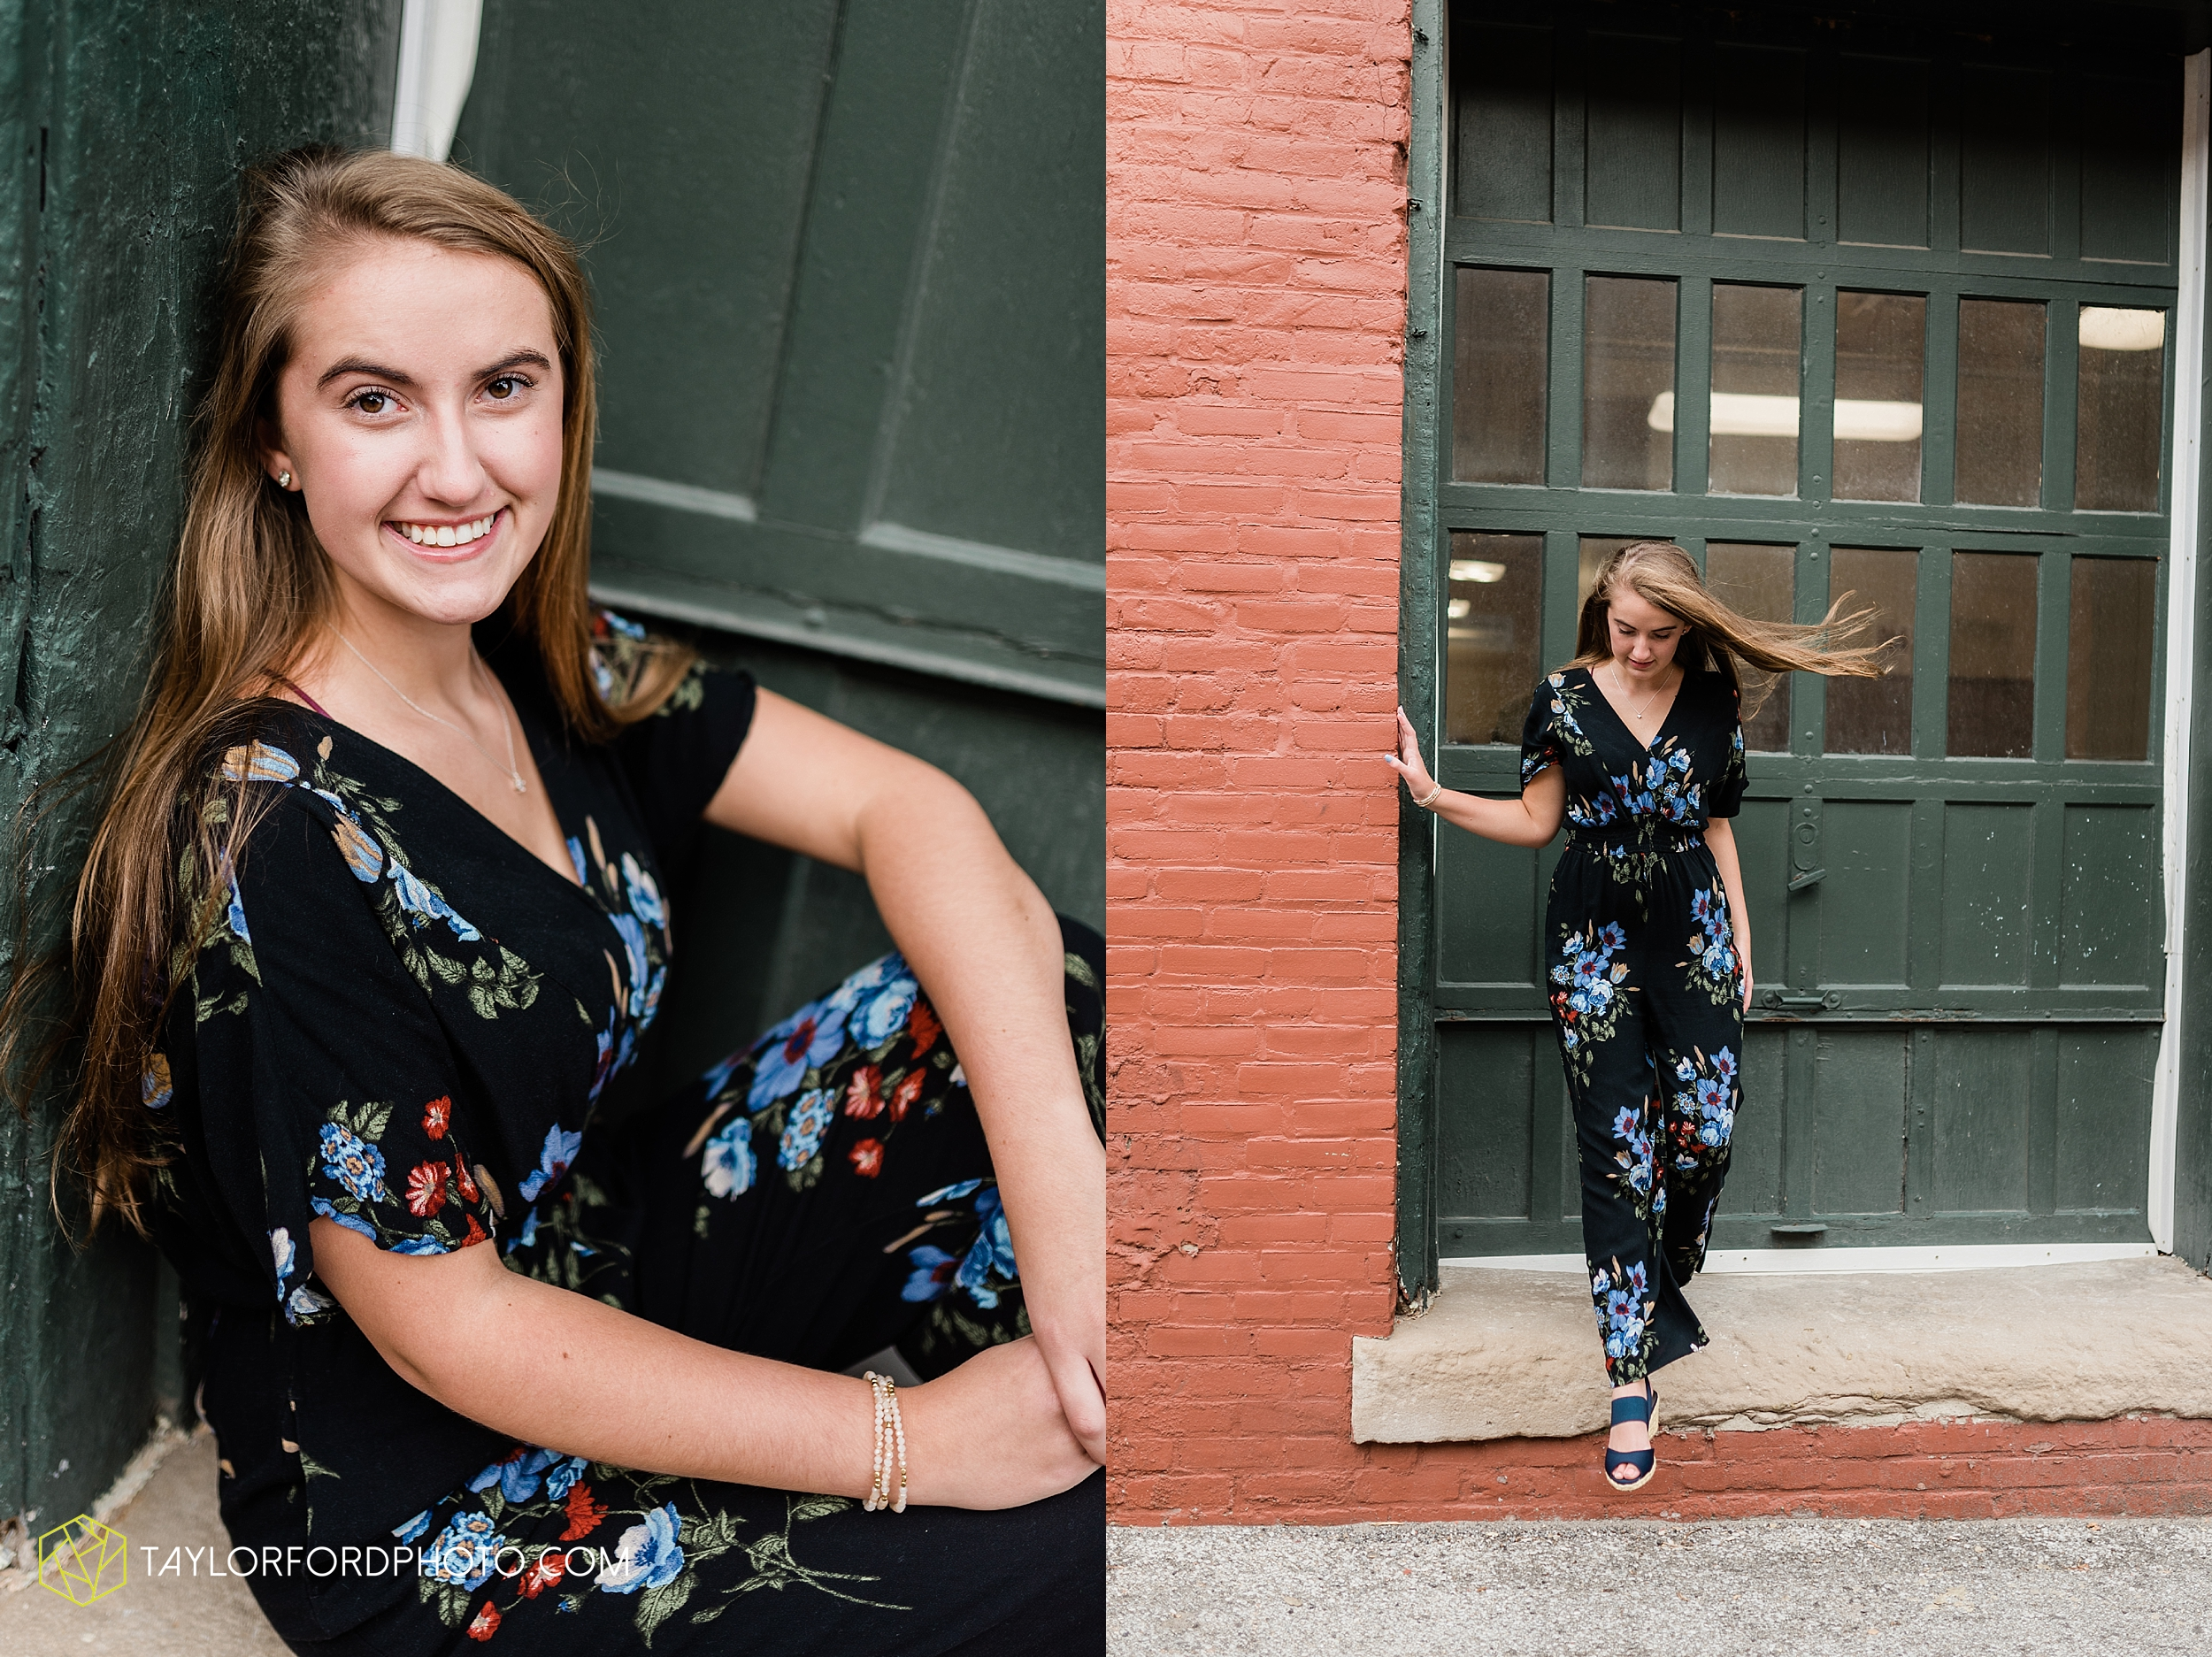 fort-wayne-indiana-carroll-high-school-senior-downtown-lake-side-rose-garden-photographer-taylor-ford-photography_0699.jpg